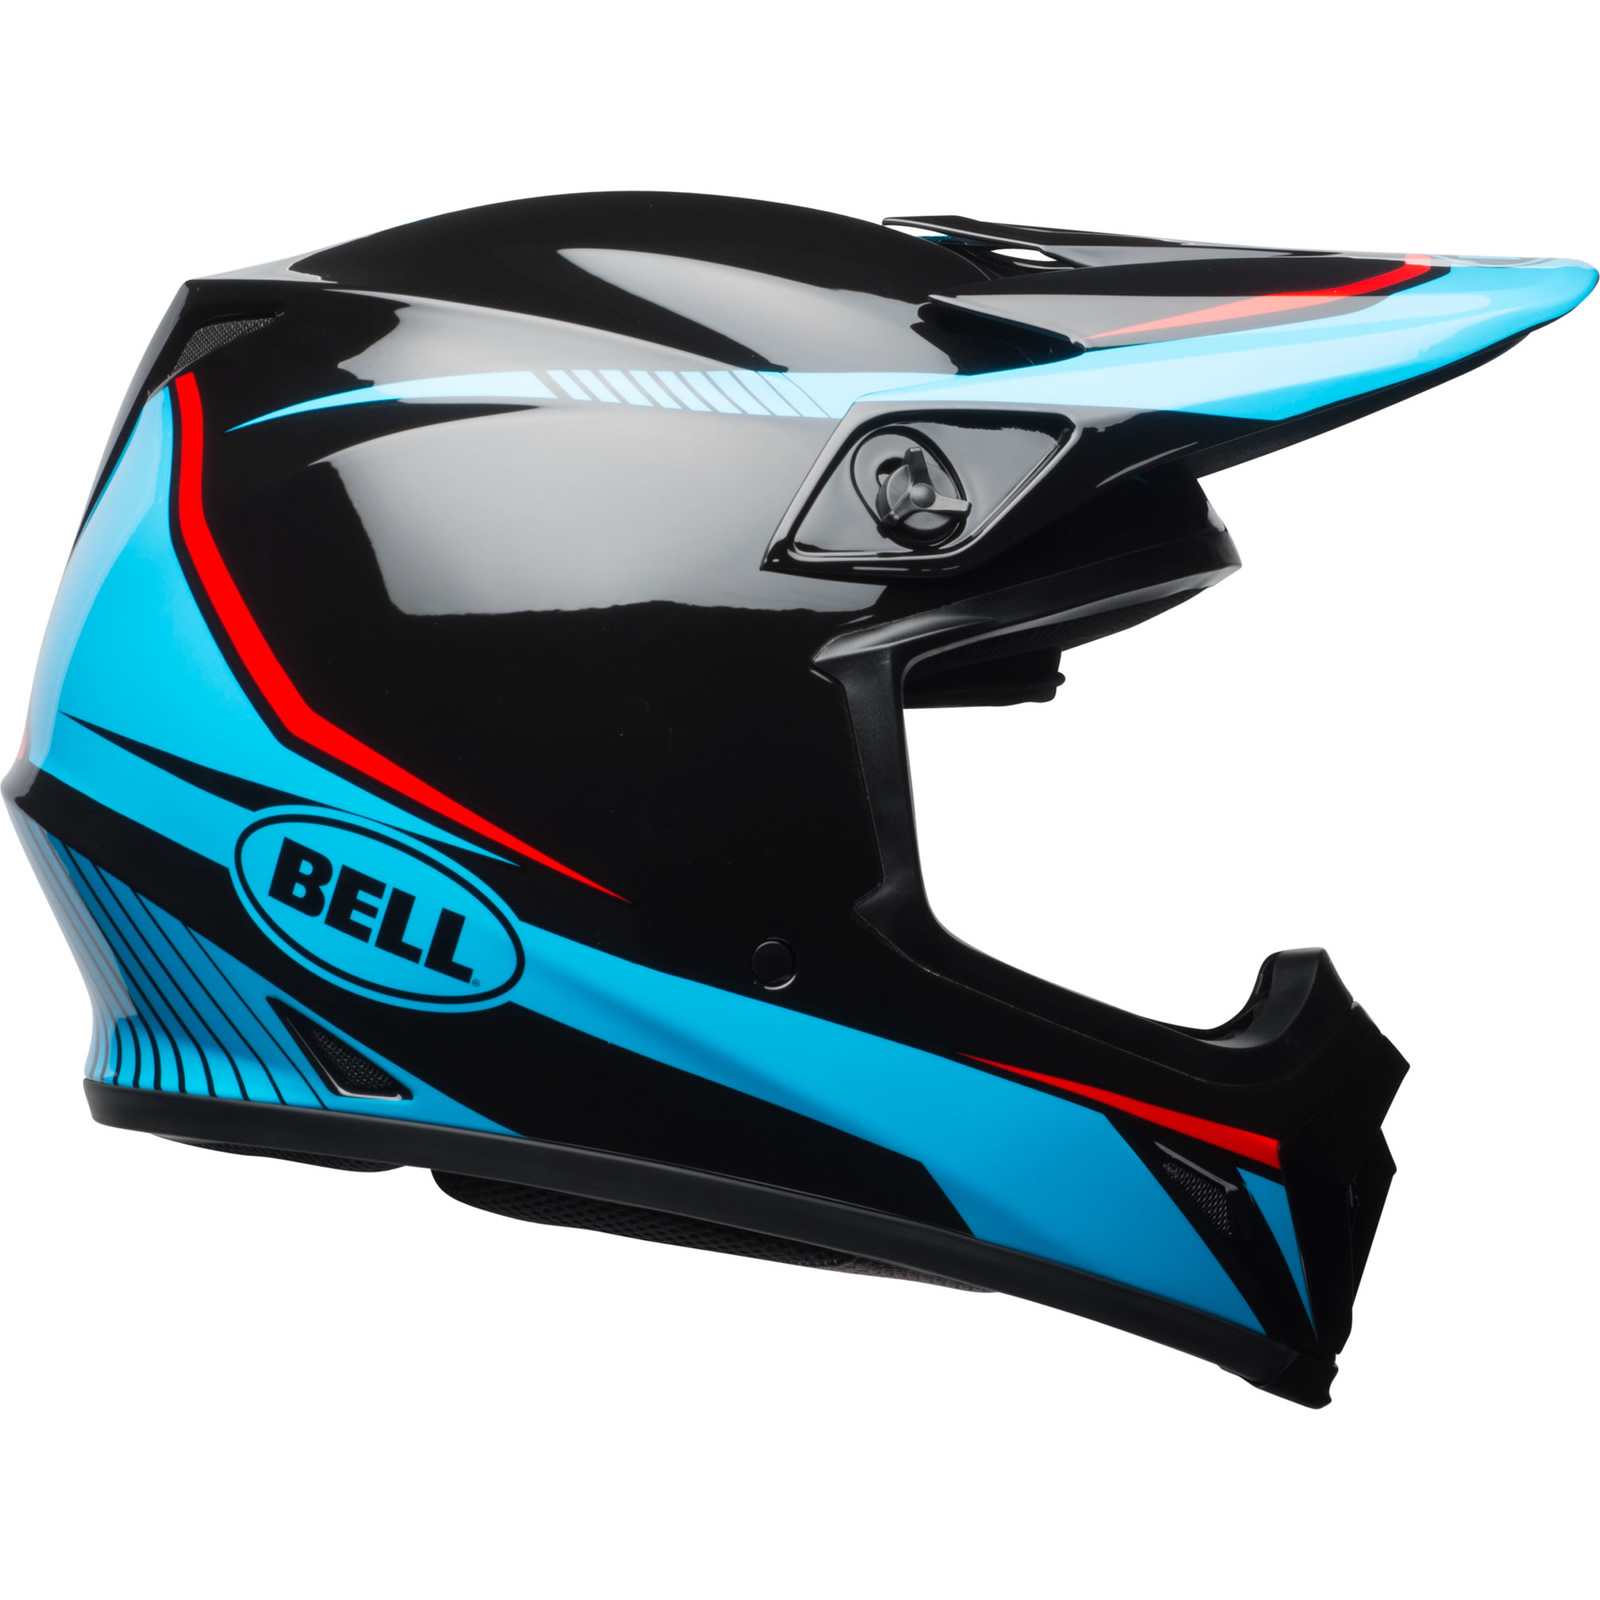 bell mx 9 mips torch motocross helmet off road enduro mx supermoto atv ebay. Black Bedroom Furniture Sets. Home Design Ideas